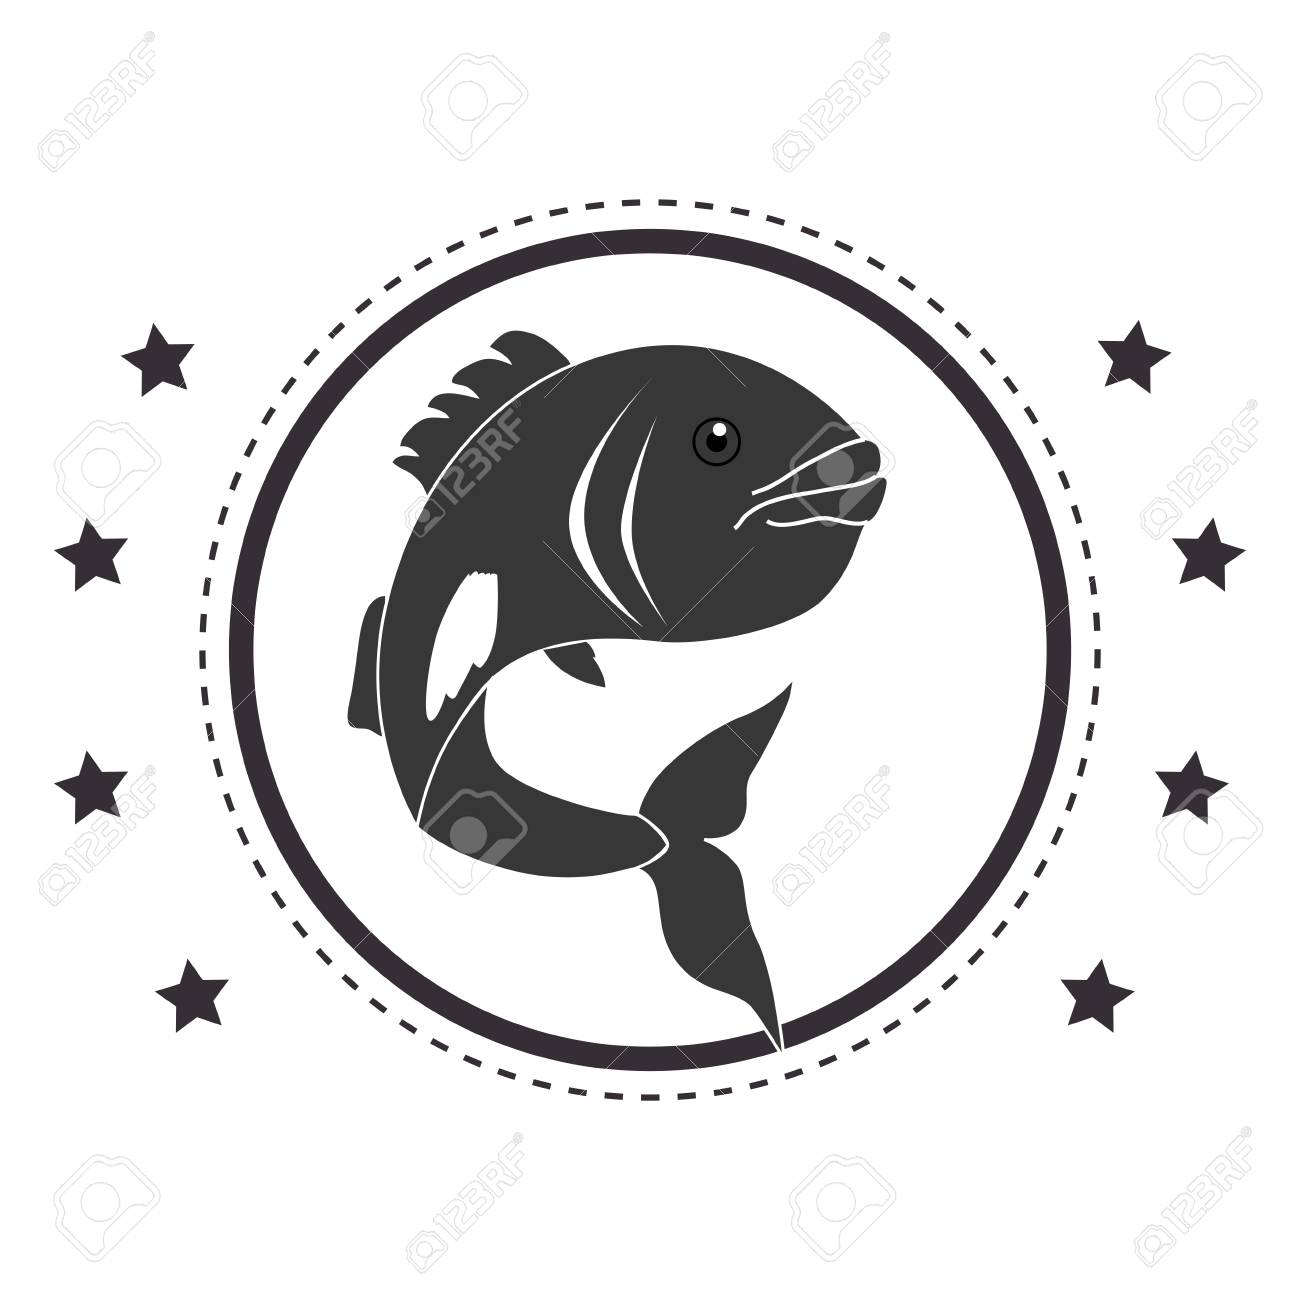 Circular Stamp With Fish Animal Marine Design Vector Illustration Stock